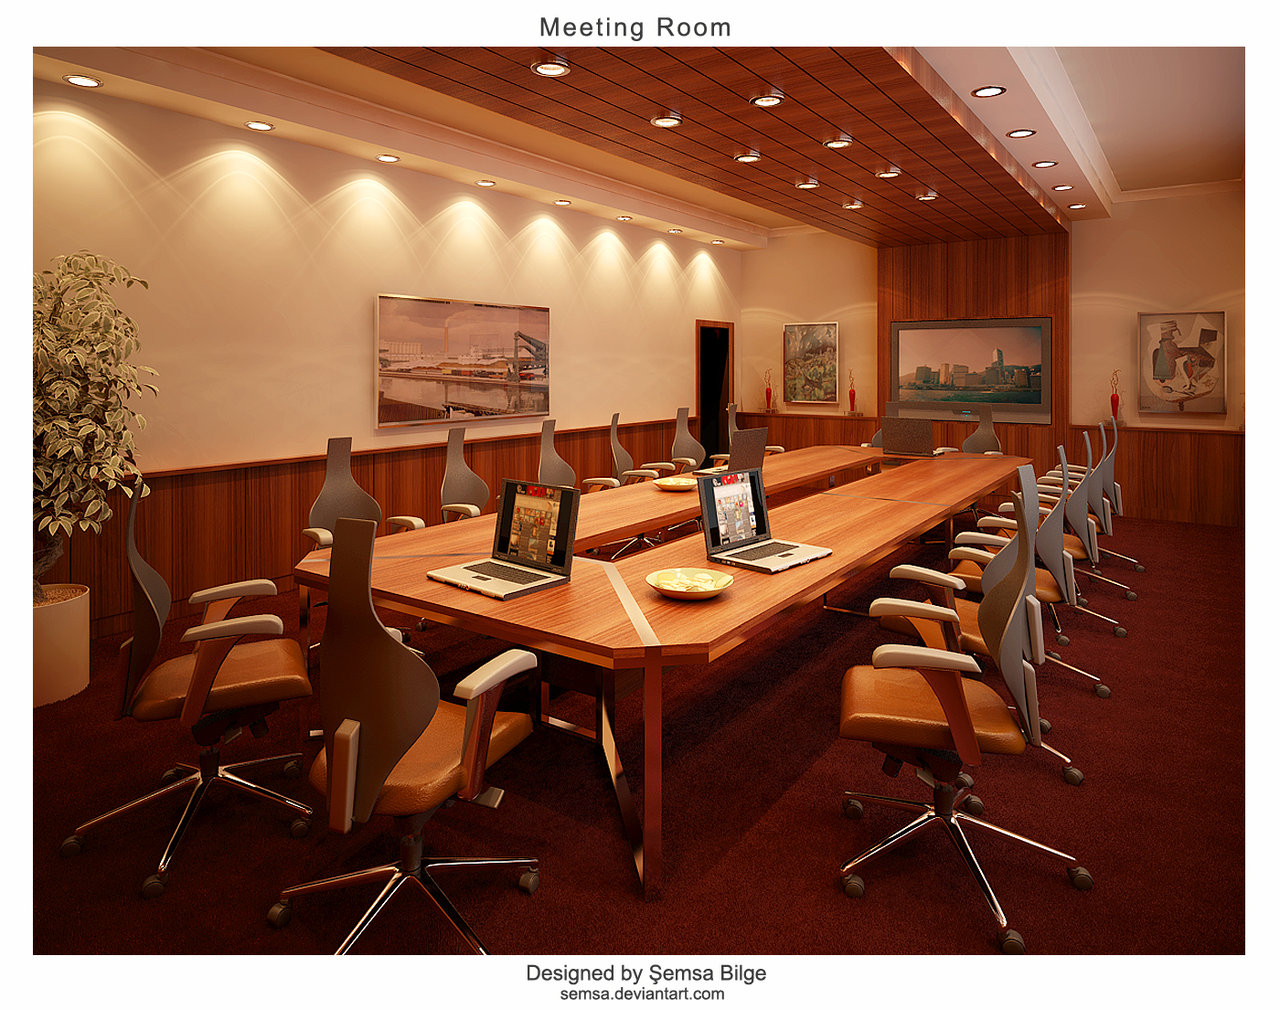 Conference Room Design Ideas white decoration business conference room with 22 cozy office and meeting room design ideas smart decor conference room pinterest the office Meeting Room Night